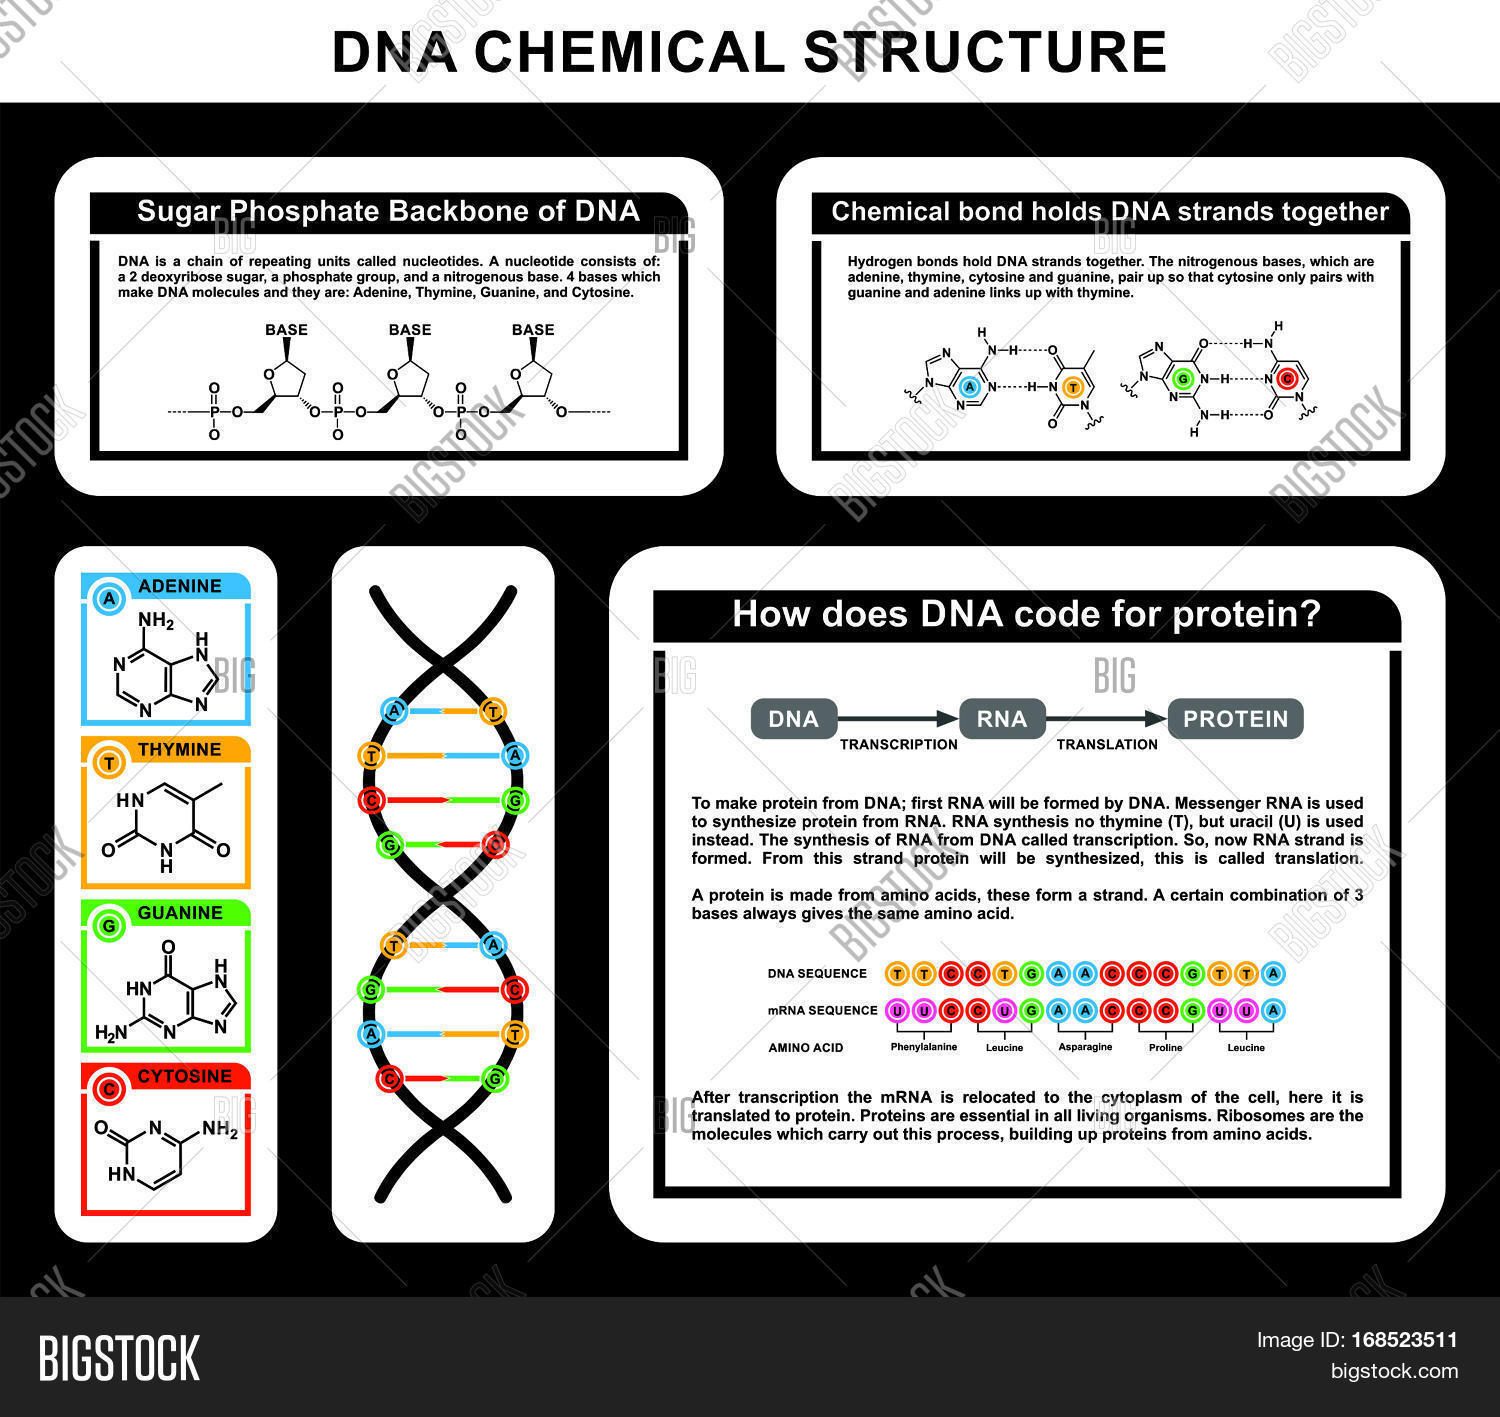 Dna chemical structure details image photo bigstock dna chemical structure details of strands compounds adenine thymine guanine cytosine in human body cell genes sciox Image collections